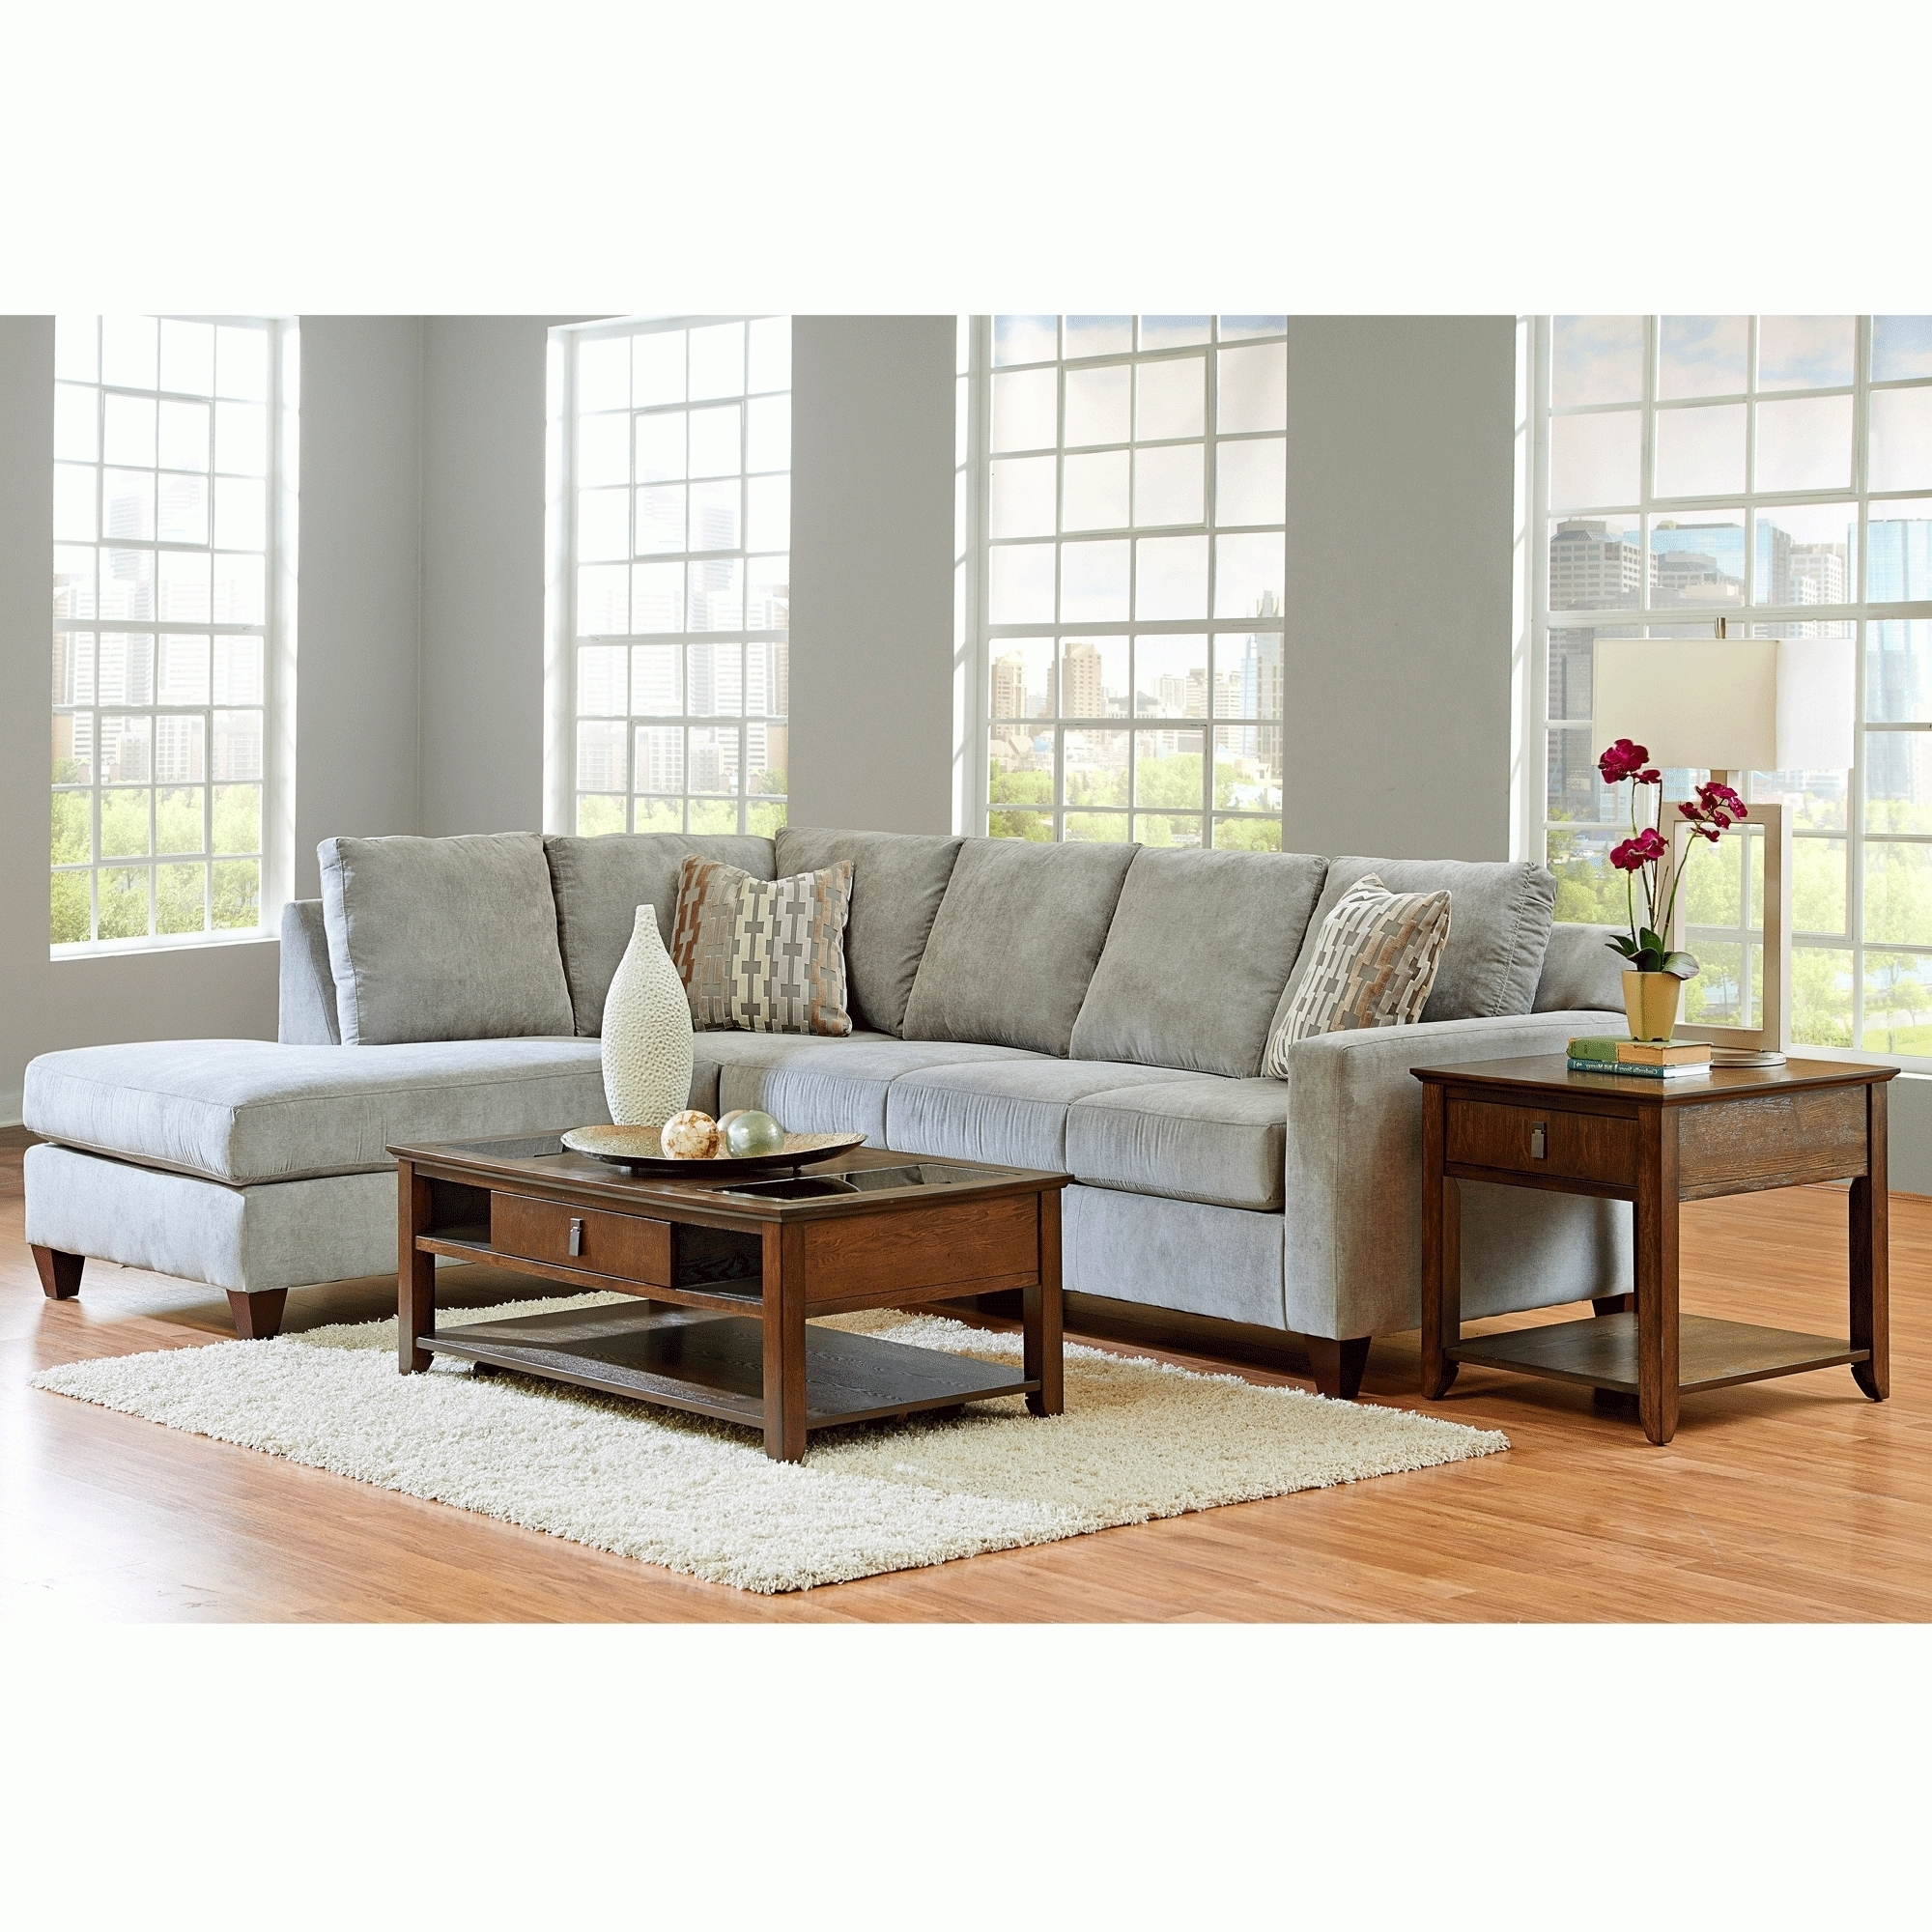 2018 Latest Nashua Nh Sectional Sofas Regarding Nh Sectional Sofas (Gallery 5 of 10)